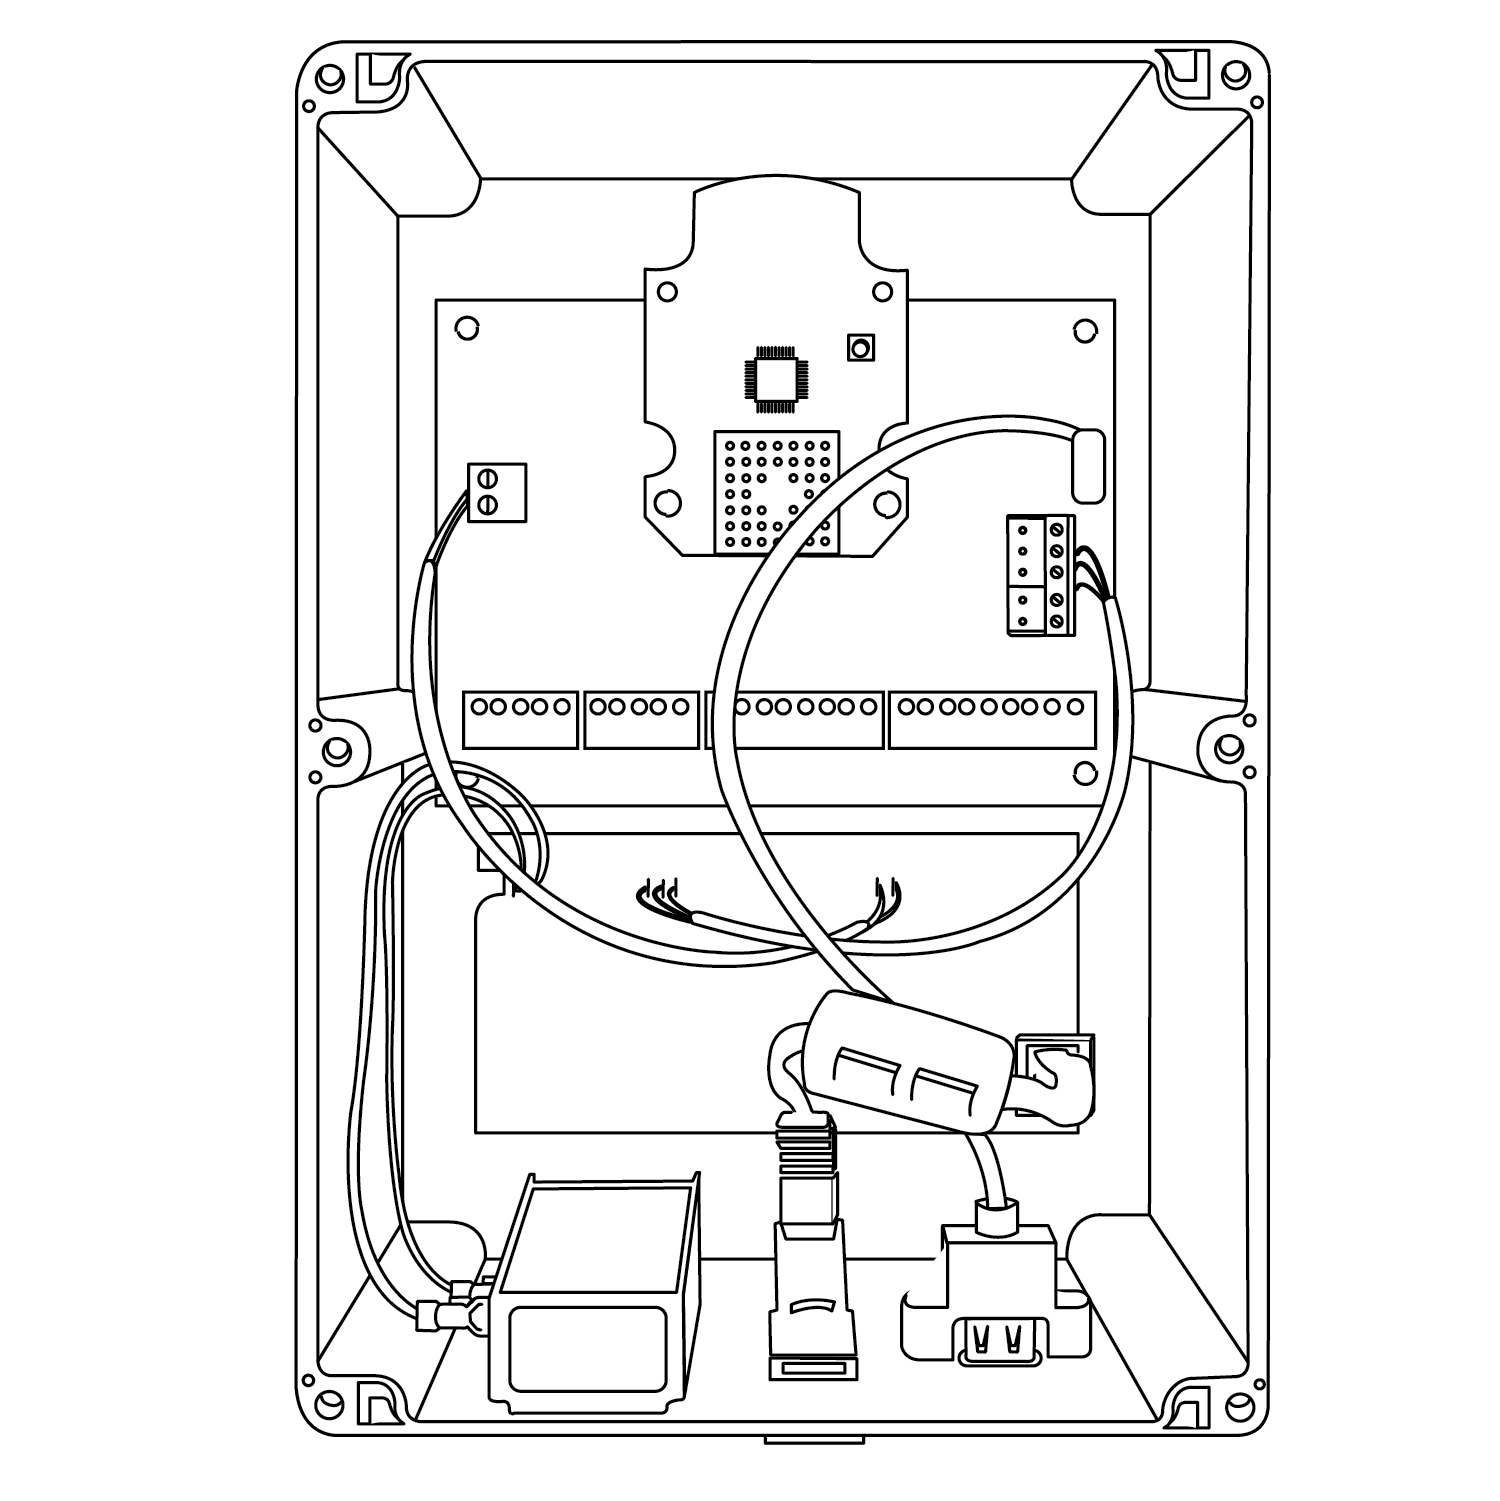 Schlage_PIM400_1501_Visio_011652 sensaguard wiring diagram wiring gfci outlets in series \u2022 wiring Farmall Tractor Wiring Harness at panicattacktreatment.co